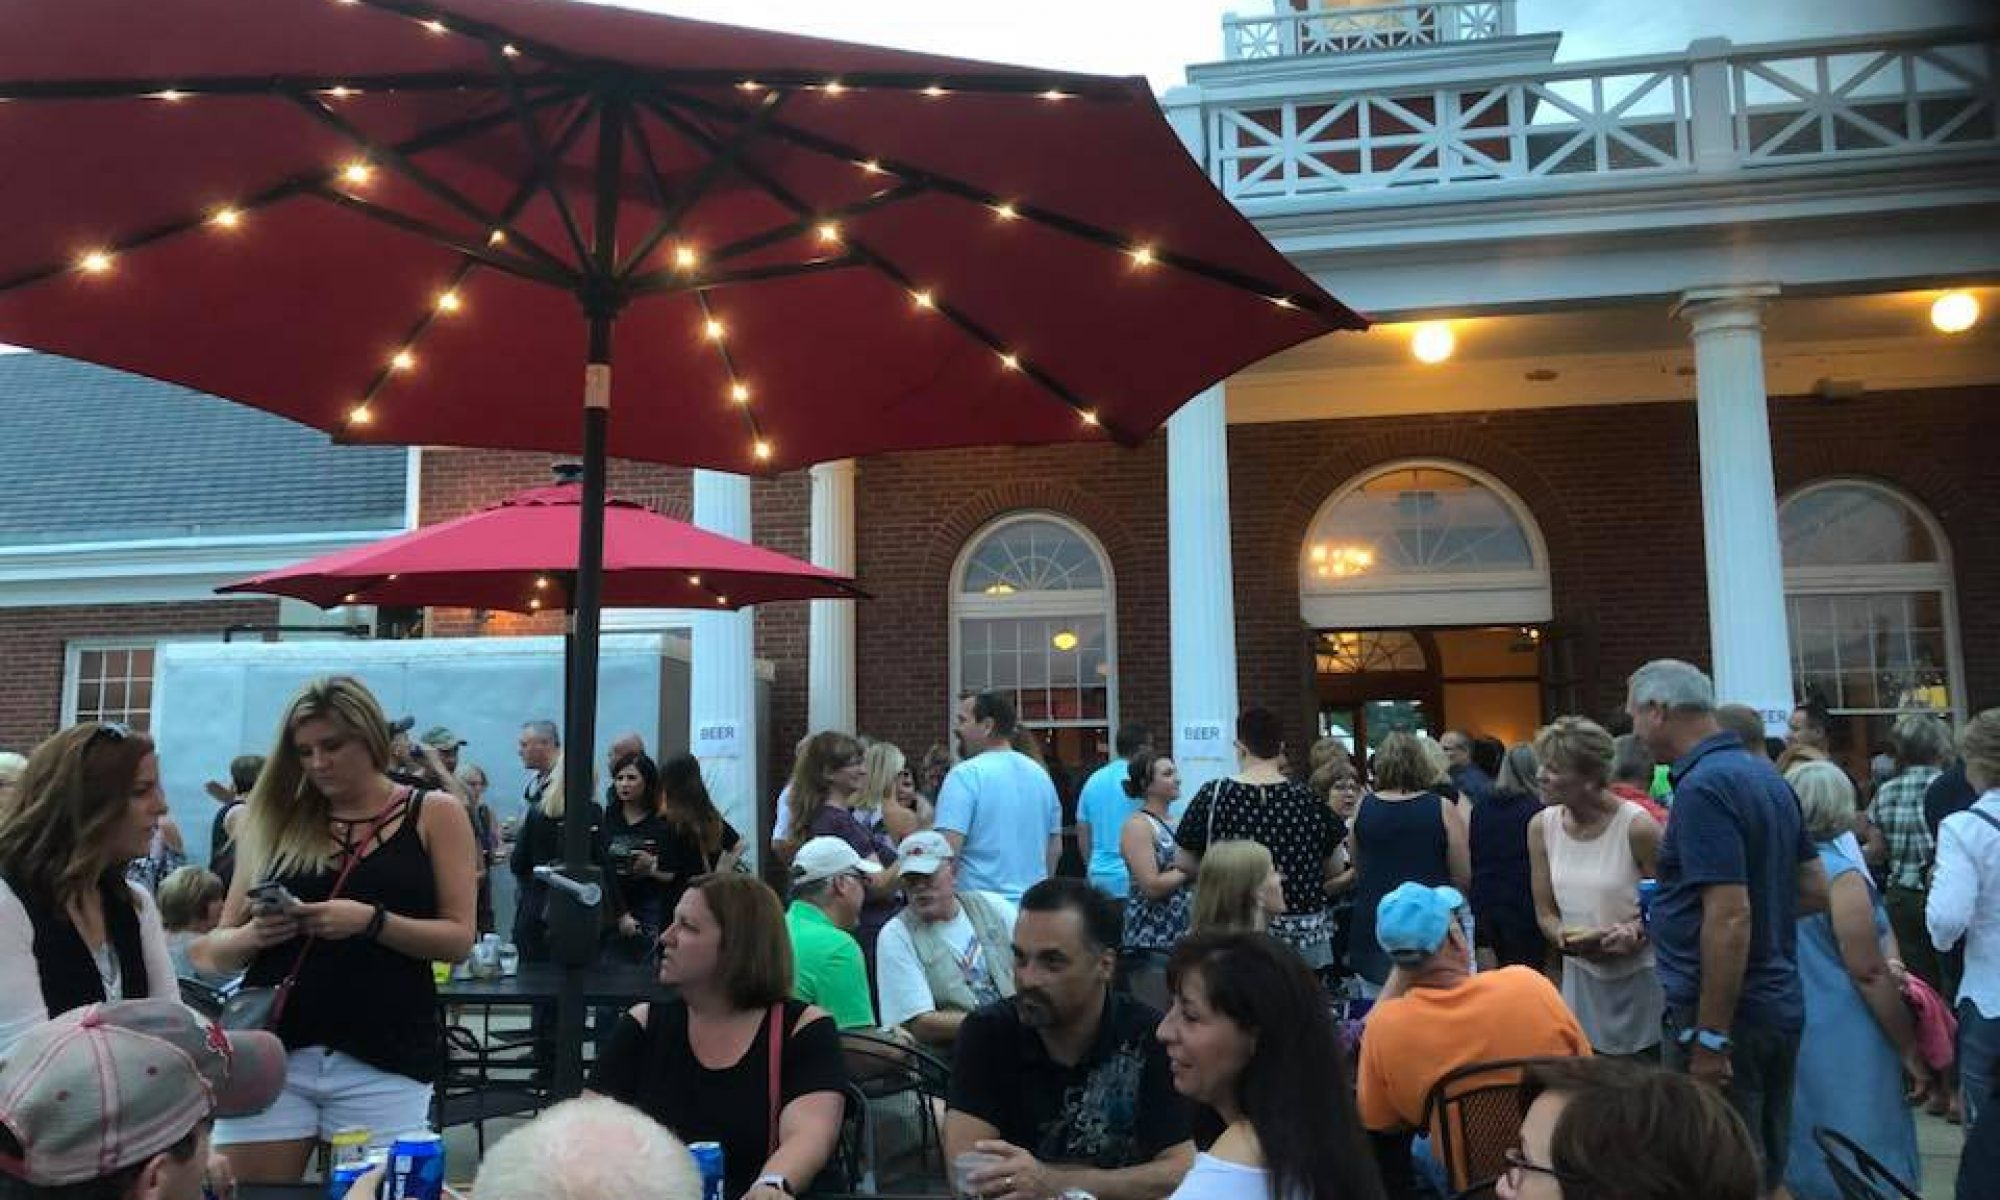 Mandan Depot Bier Hall – Food, Bier & Games intended for Country Beer House Garden Cafe And Ktv